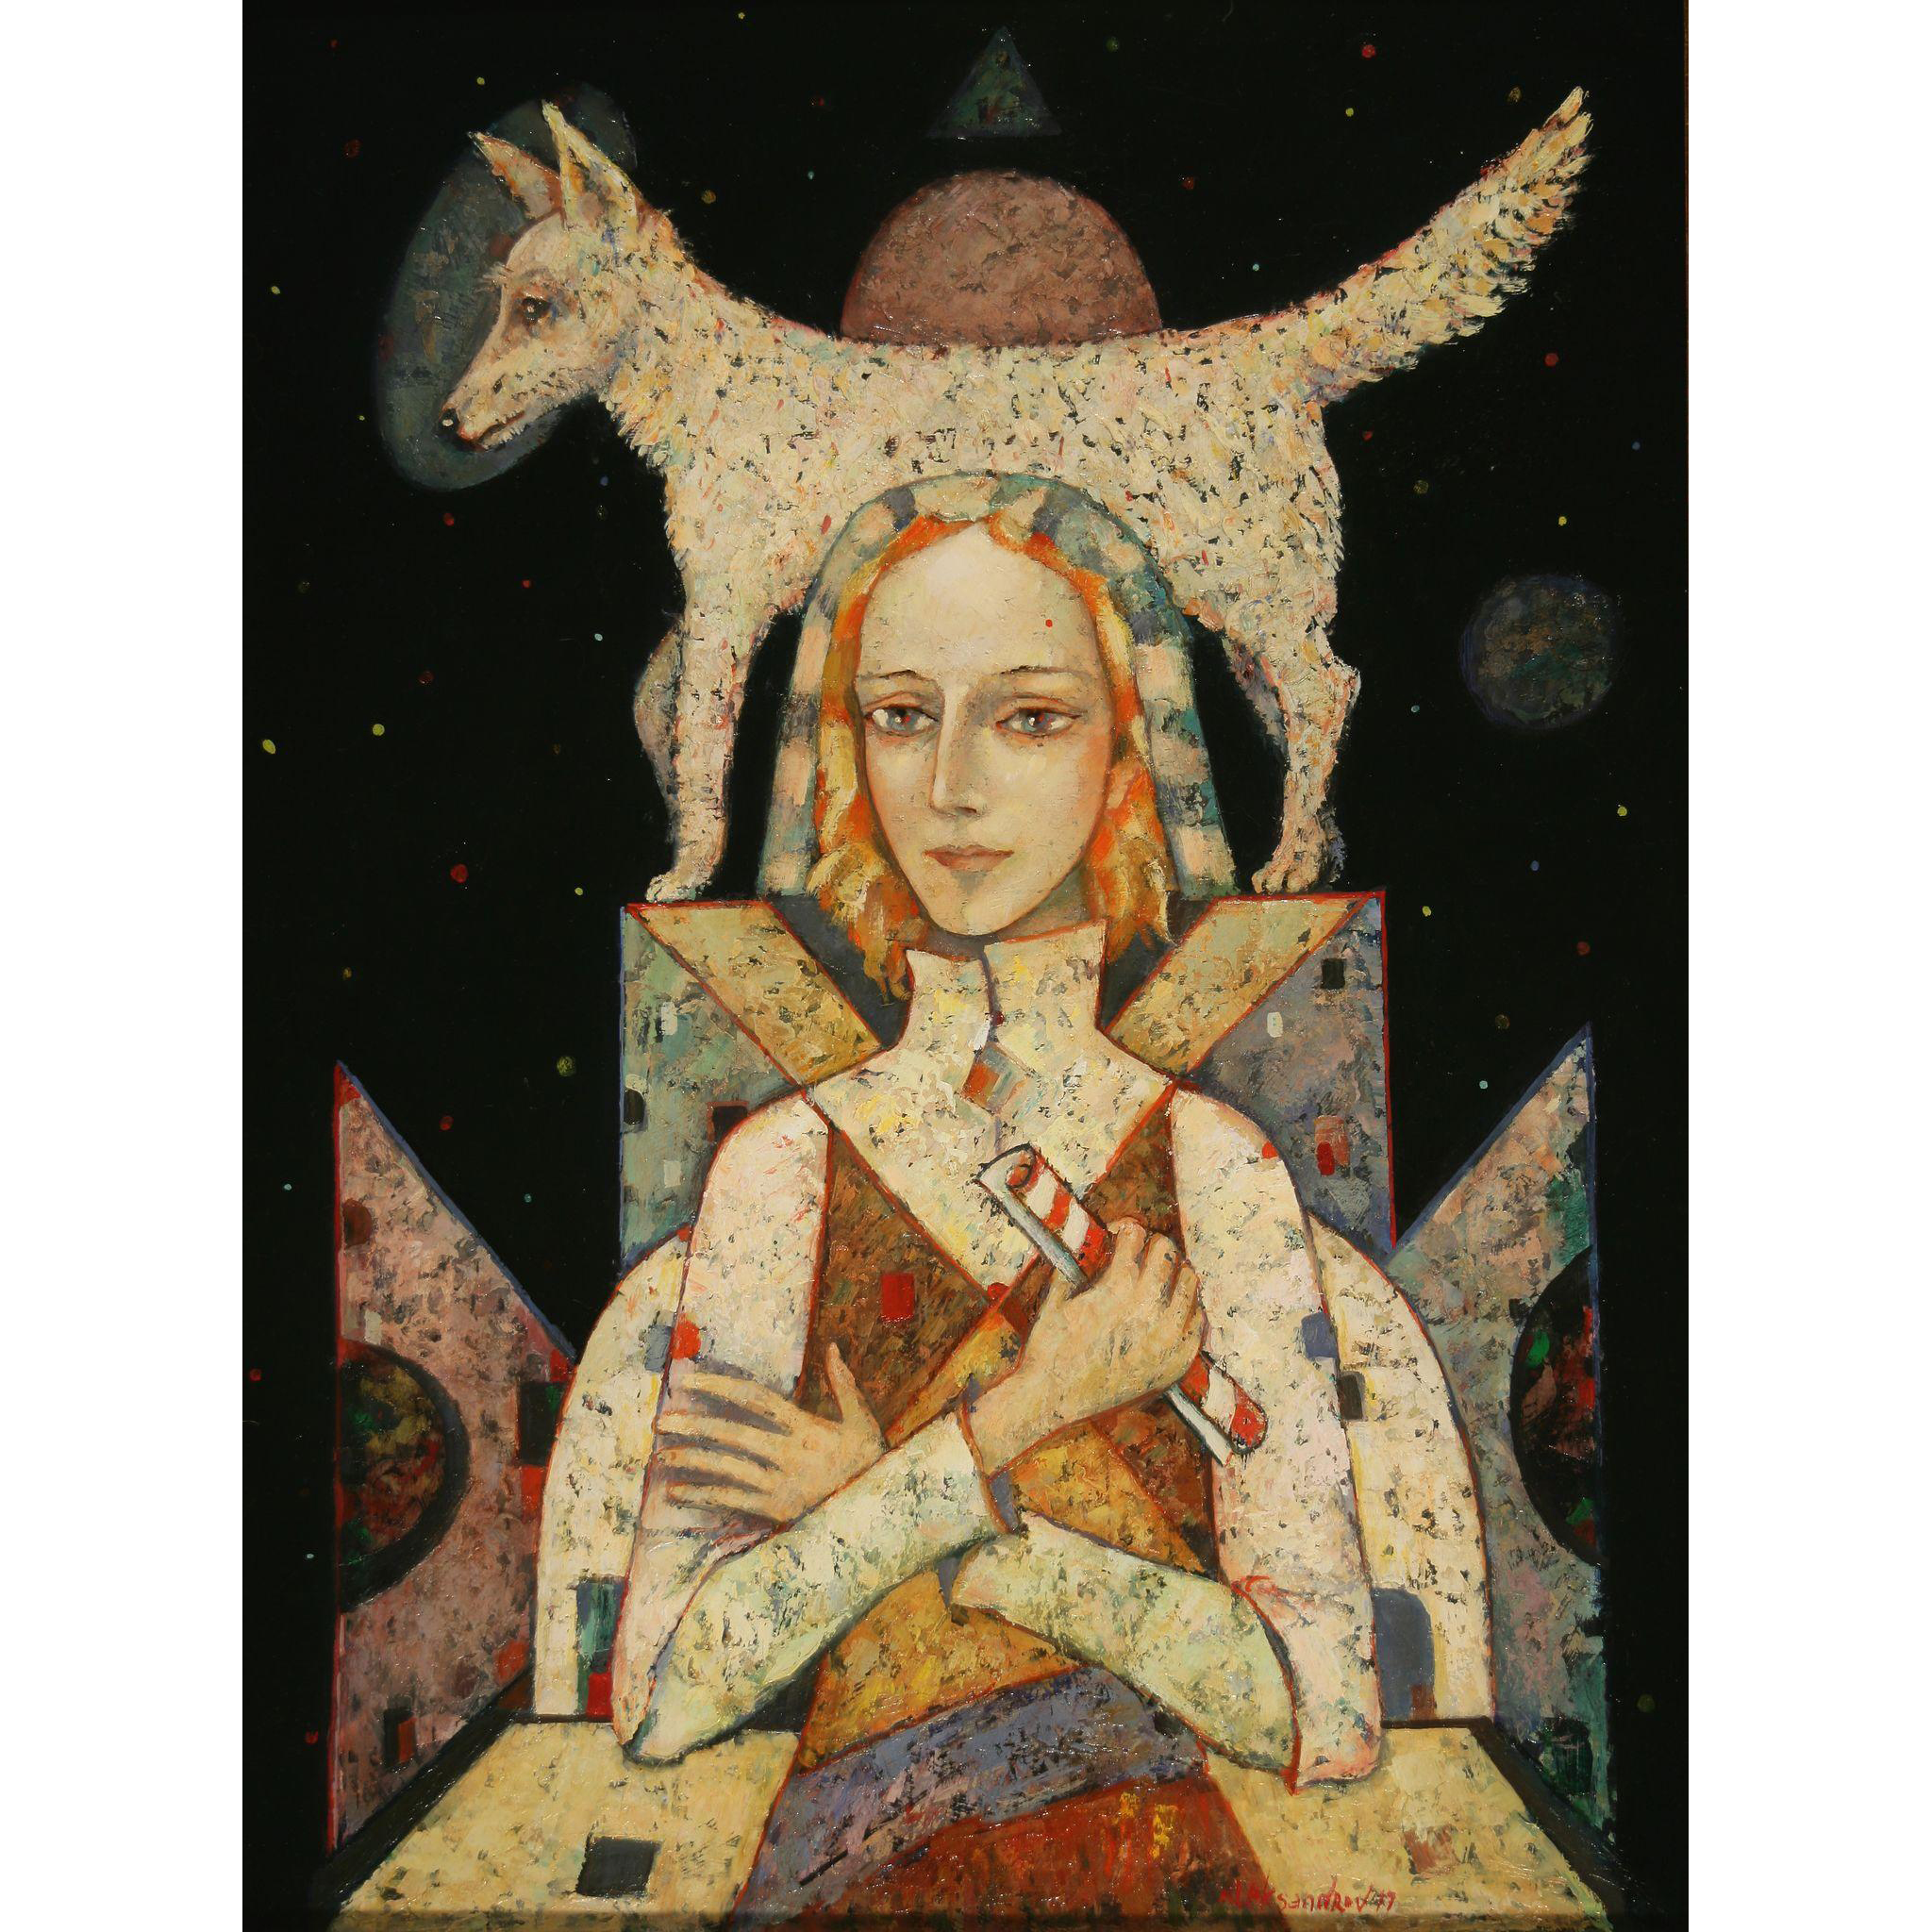 Fidelity - woman with dog abstract original oil painting by Russian American artist Mihail Aleksandrov